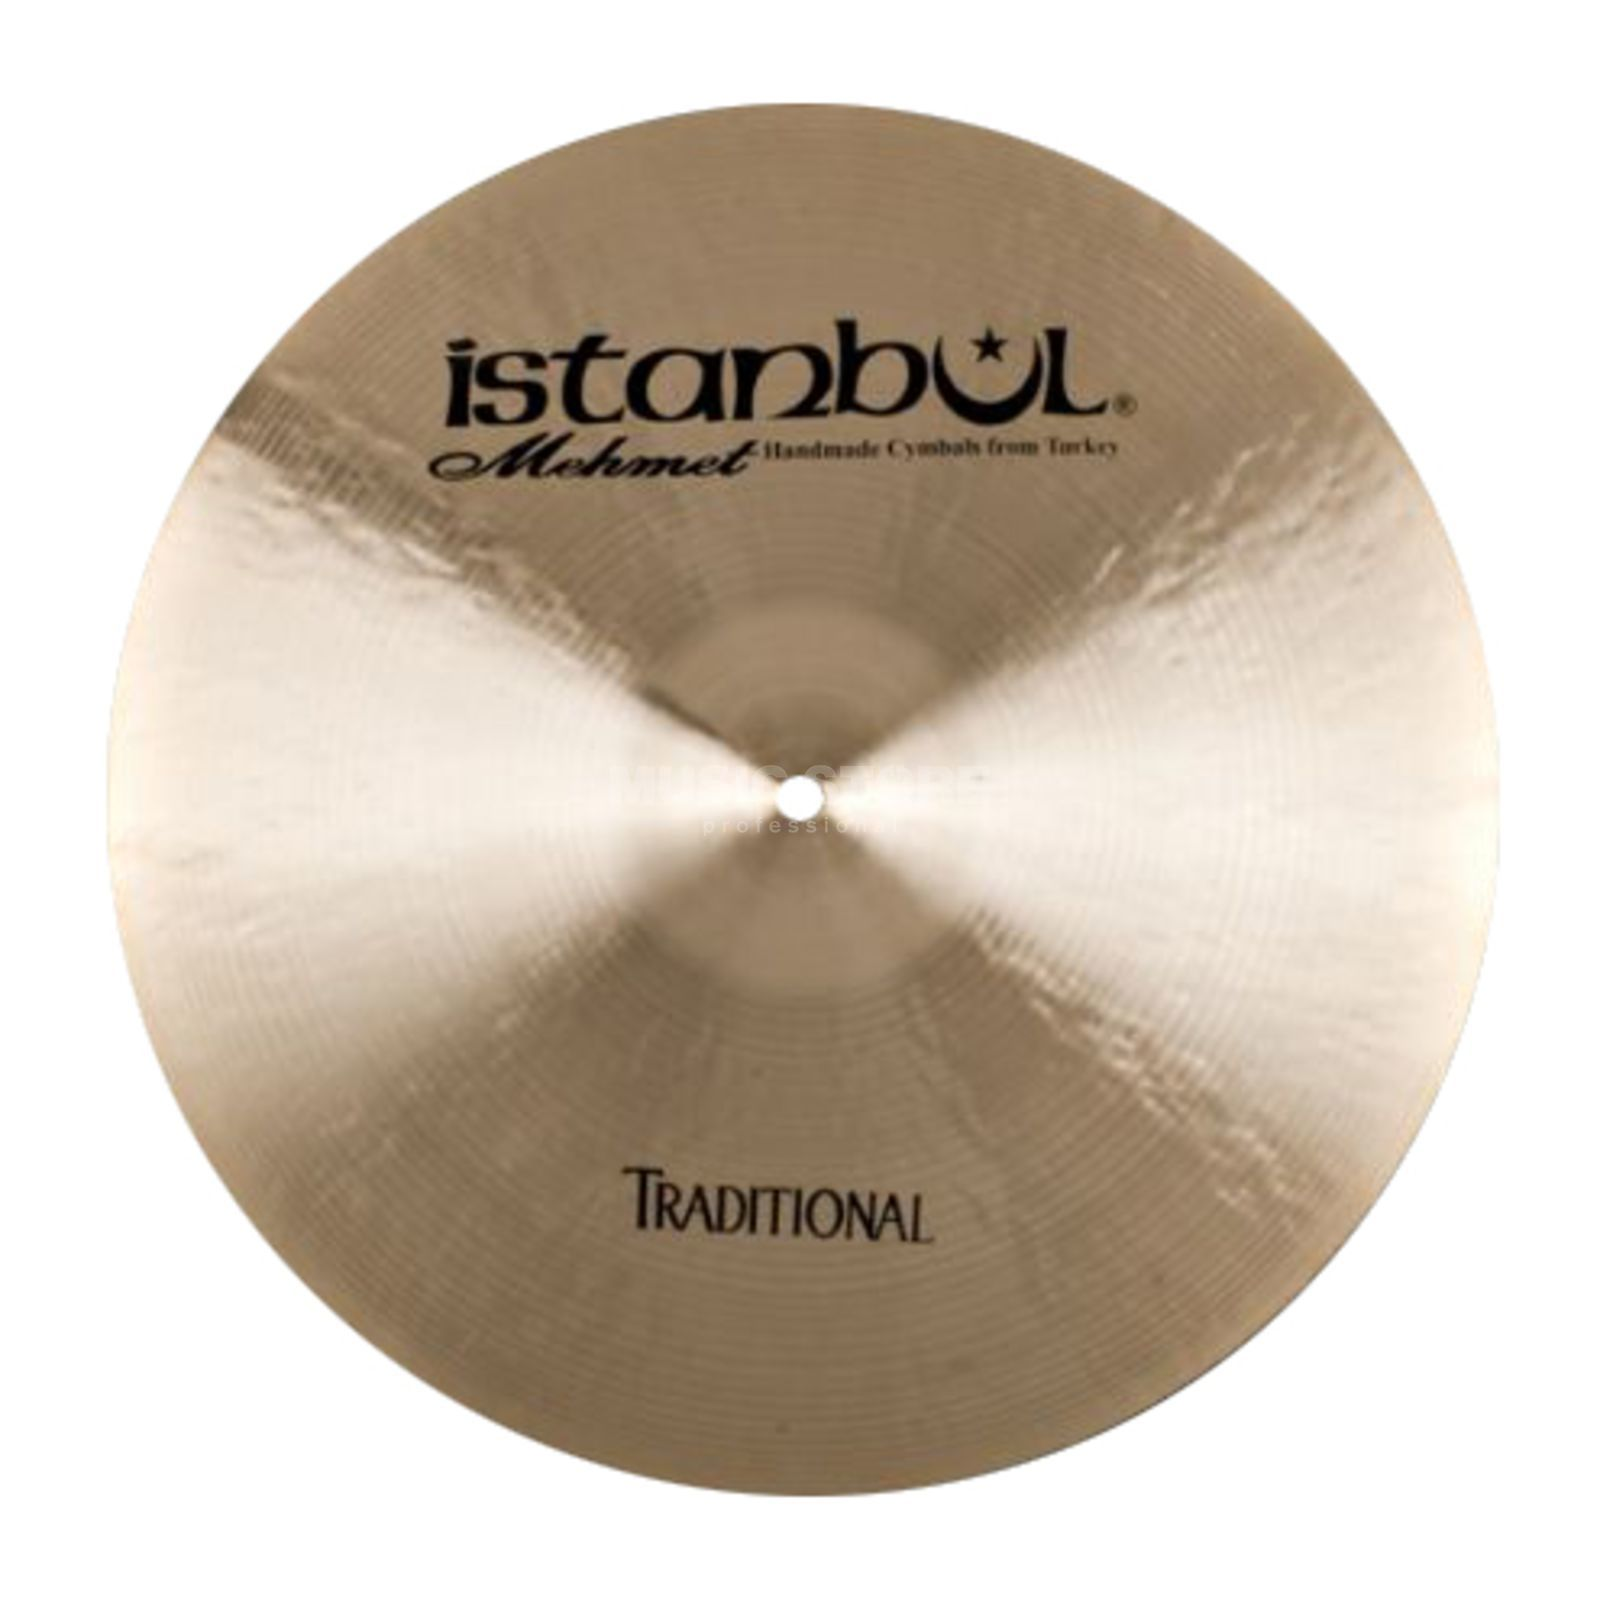 "Istanbul Traditional Medium Crash 15"", CM15 Produktbild"